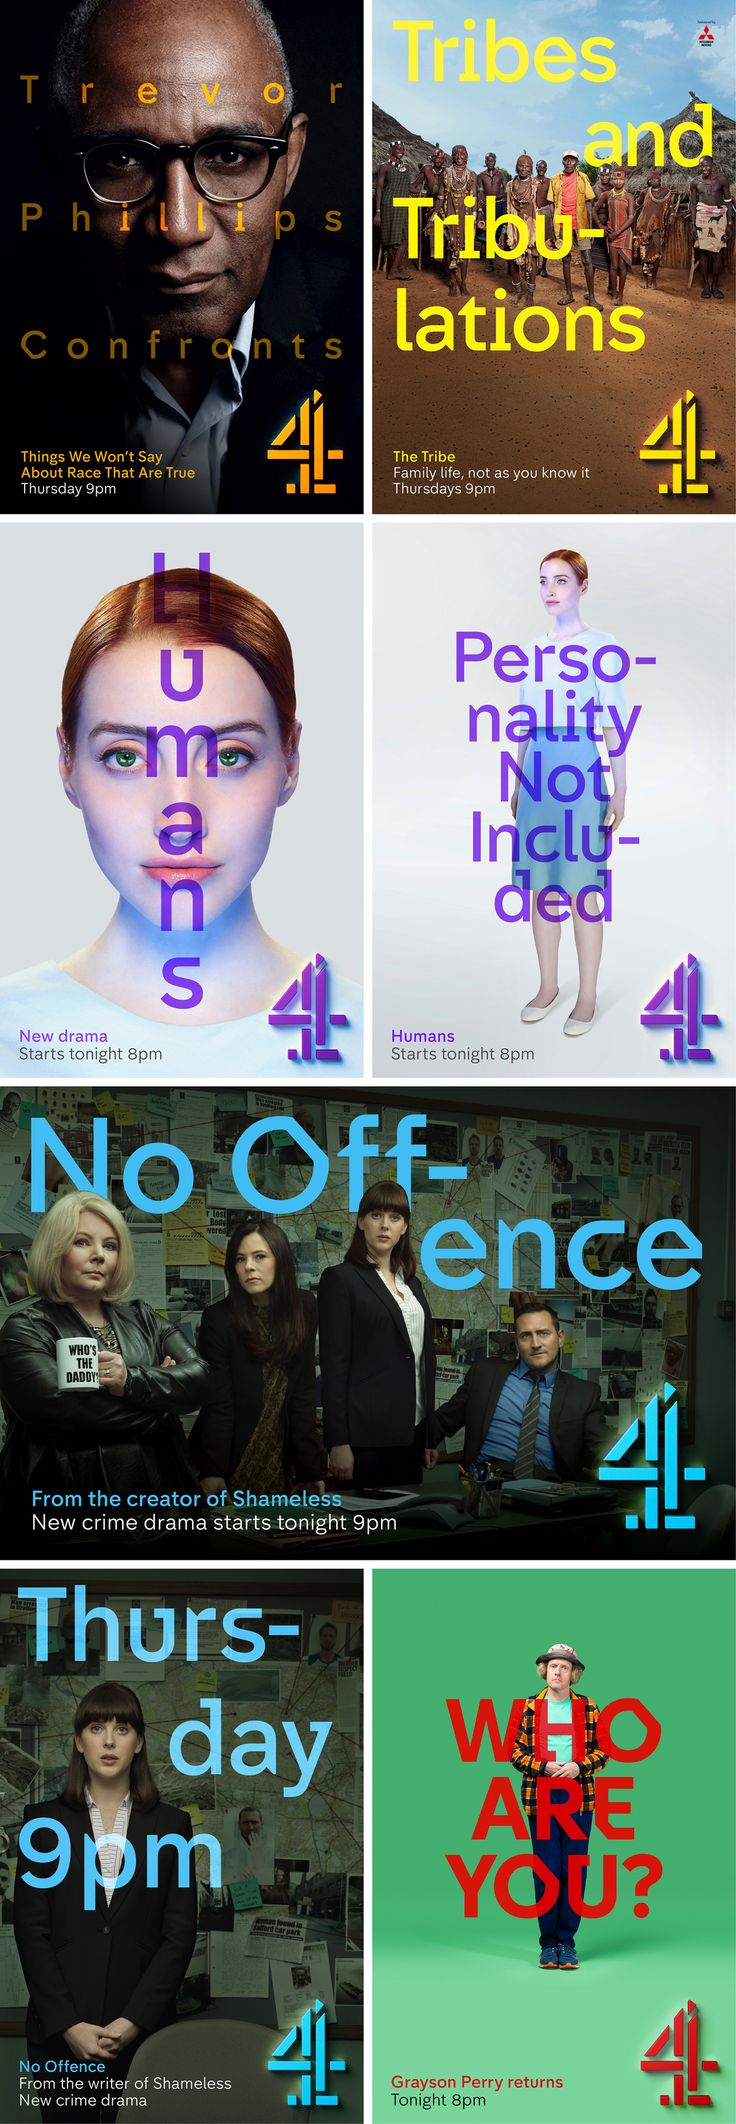 Channel 4 rebrands, with help from Jonathan Glazer and Neville Brody | Creative Review